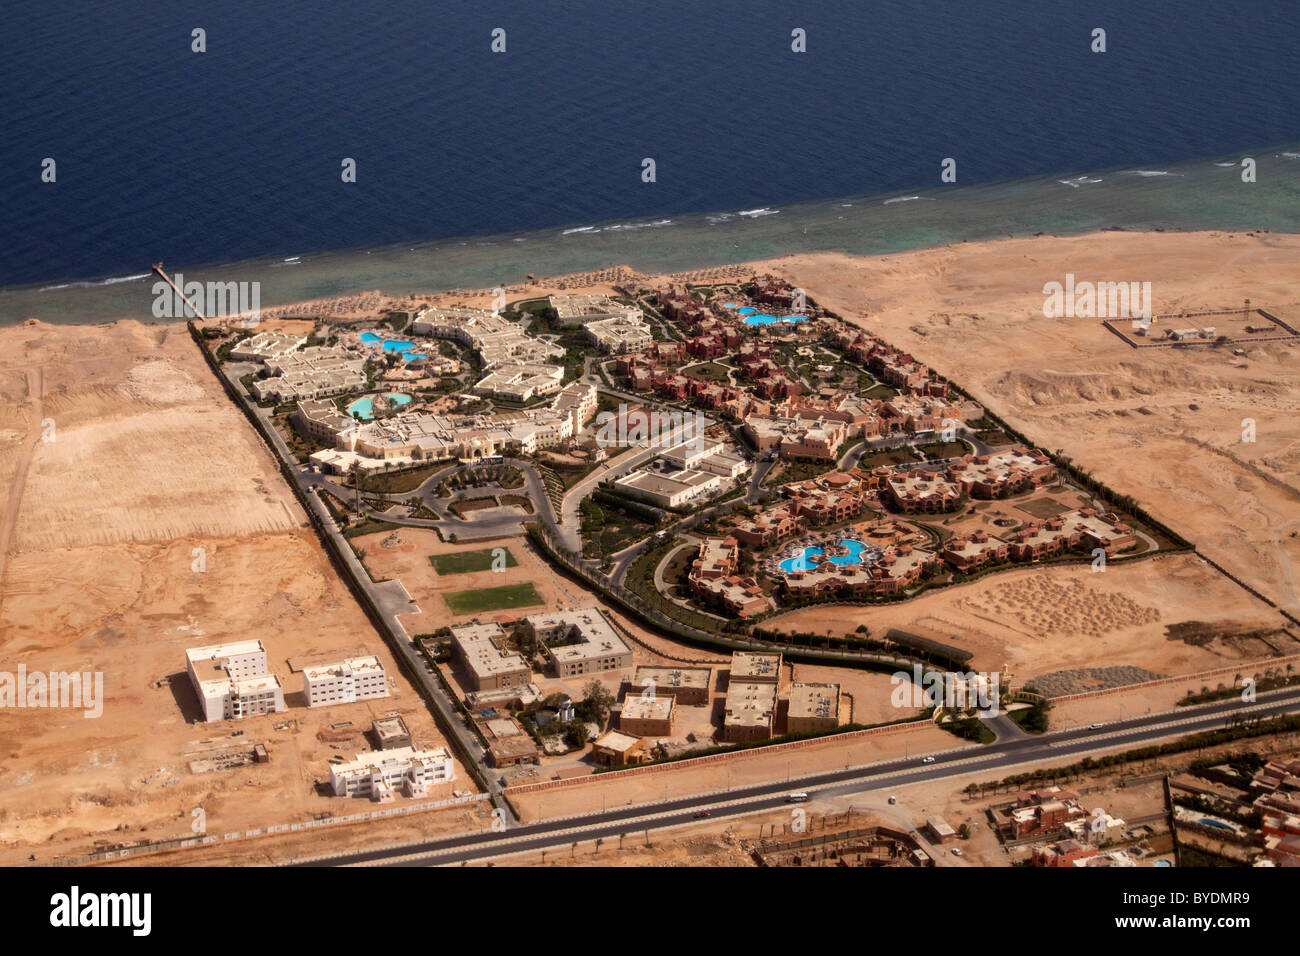 Aerial view, hotel complex on the beach of Sharm El Sheik, Sinai, Egypt, Africa - Stock Image